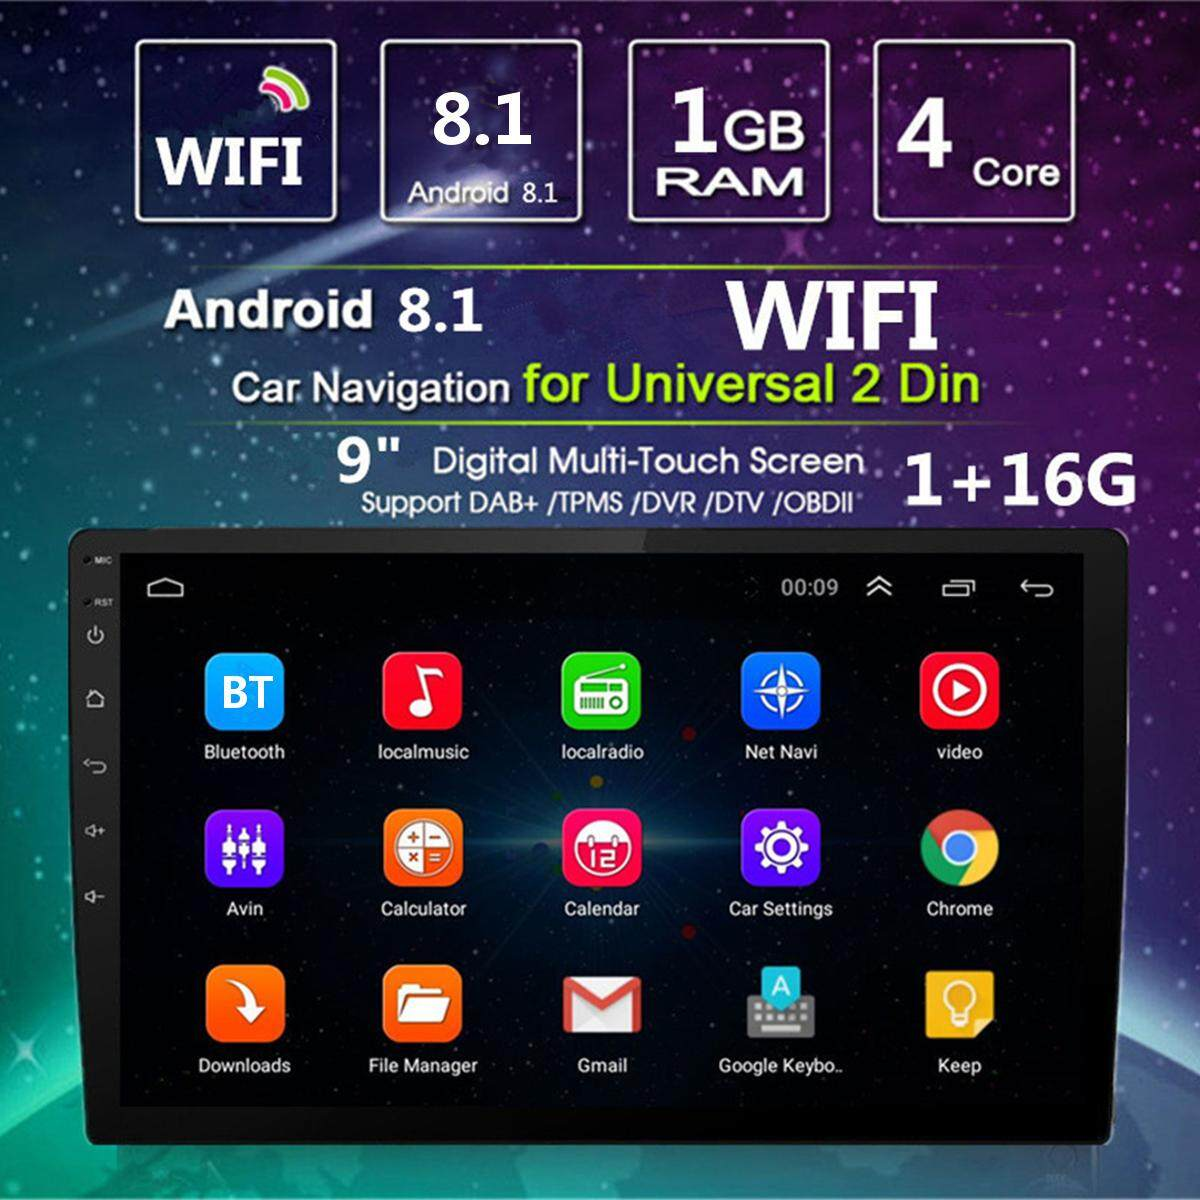 Toyota Altis 2008 - 2013 Android Player With Casing IPS Screen 1GB Android 8.1 Plug and Play With WIFI And TouchScreen MP3 MP4 MP5 CD FM USB SD BT (NO DVD)